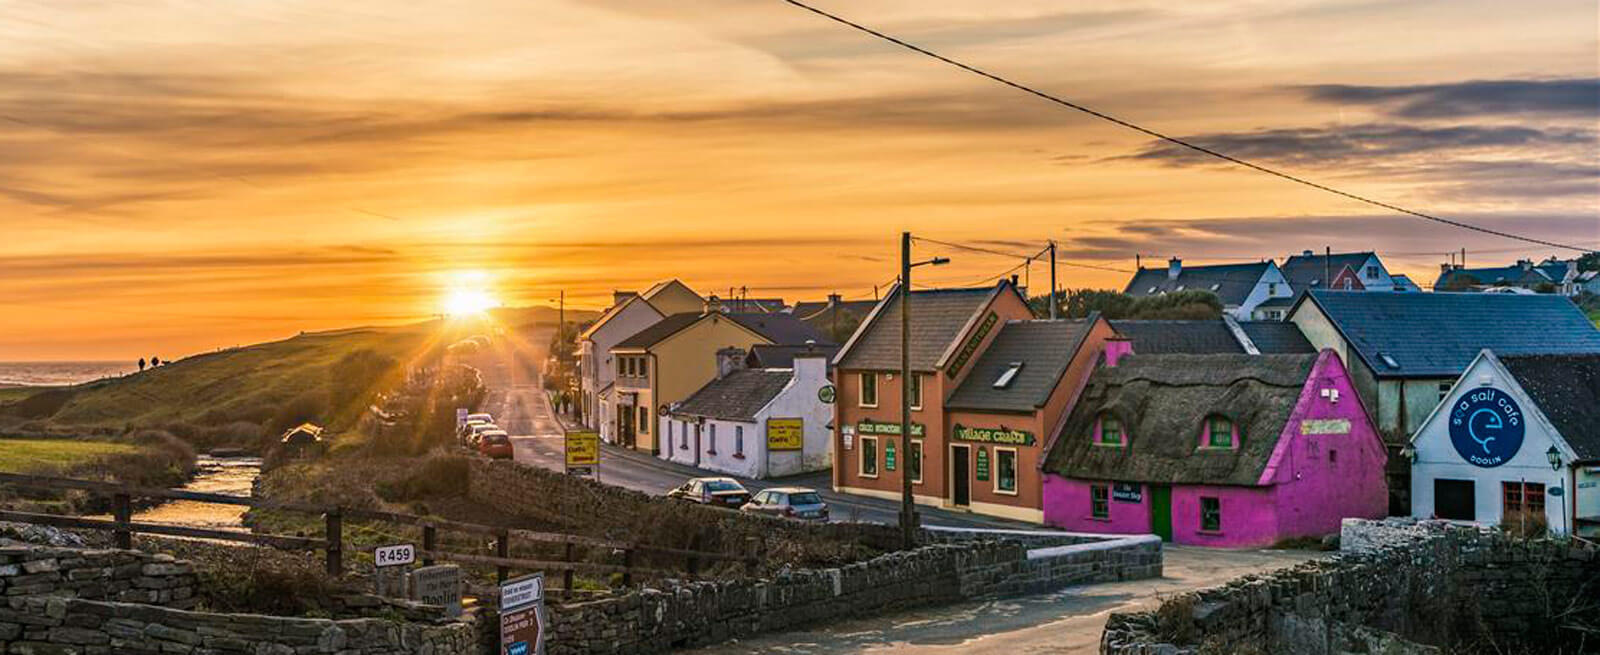 Doolin - A beautiful Irish village in the heart of the Wild Atlantic Way